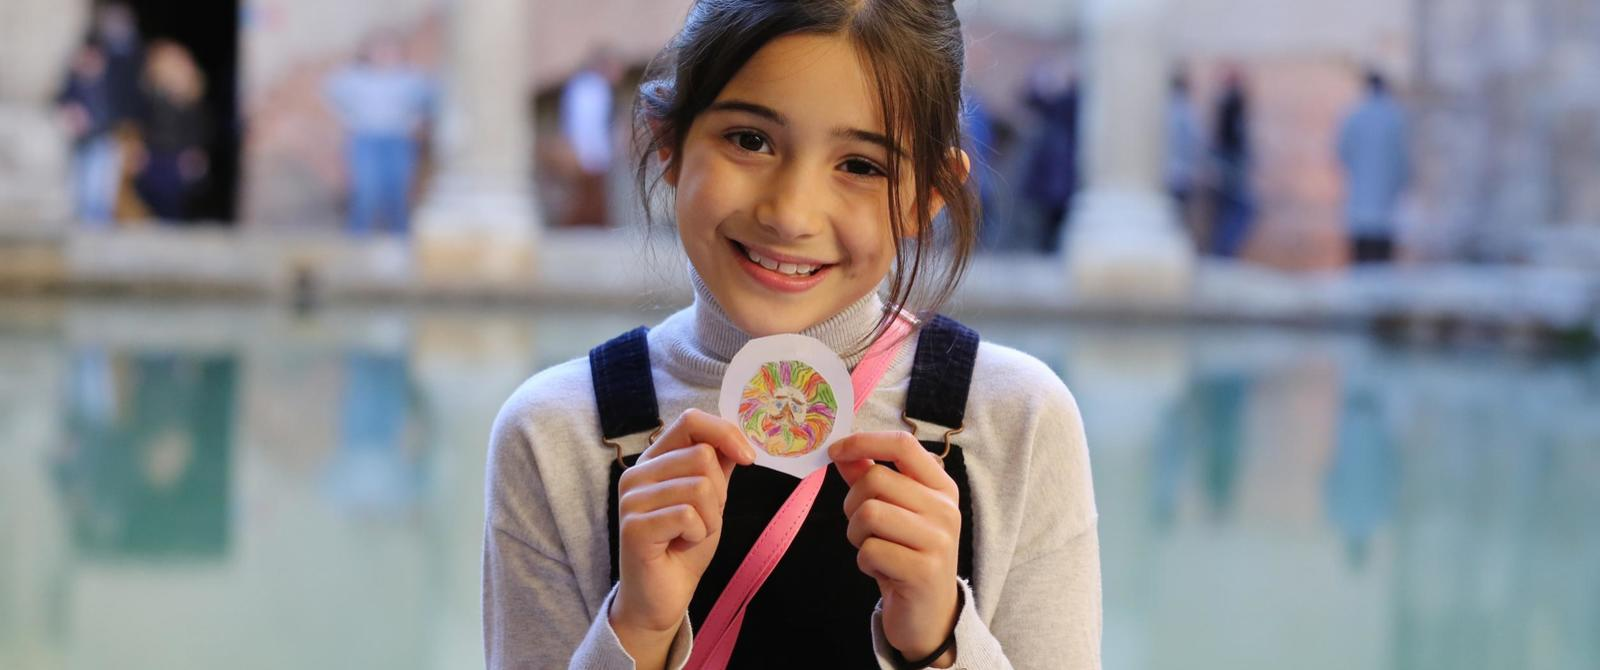 Image: A child showing her finished fridge magnet